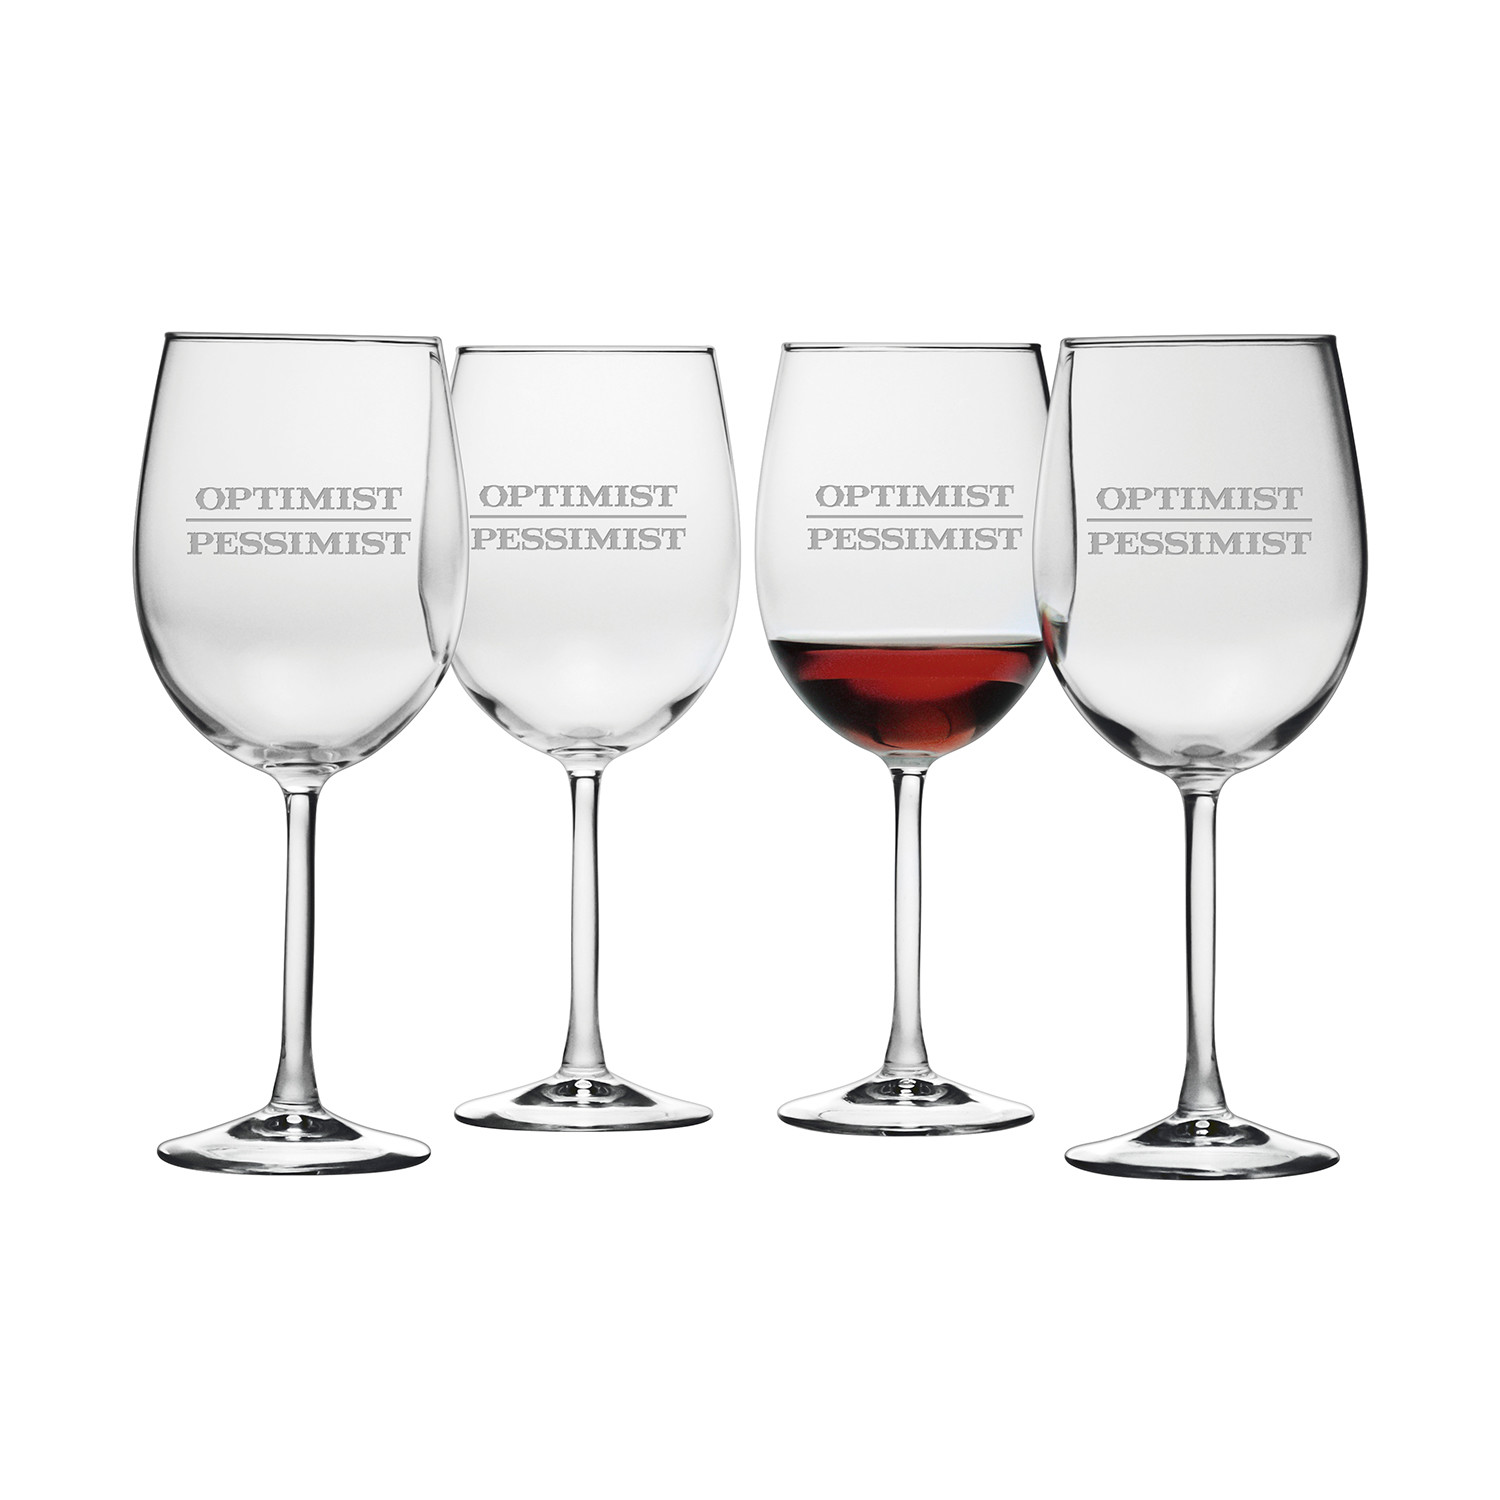 Optimist pessimist stemless wine glasses set of 4 susquehanna glass touch of modern - Stemless wine goblets ...